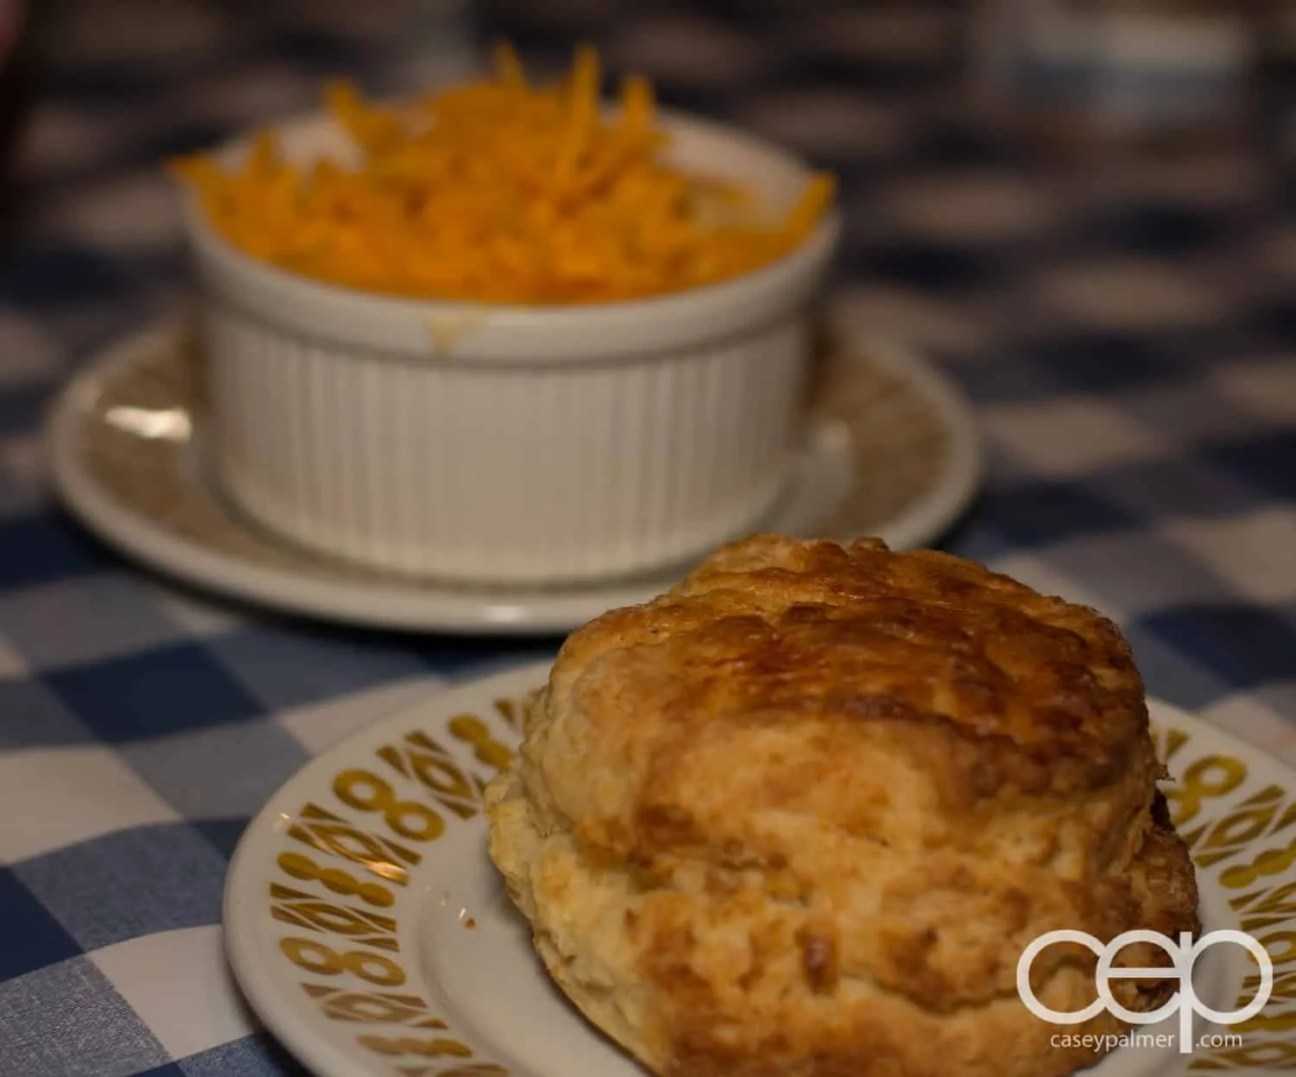 A buttermilk biscuit and mac n' cheese at the Memphis Fire Barbecue Company in Winona, ON